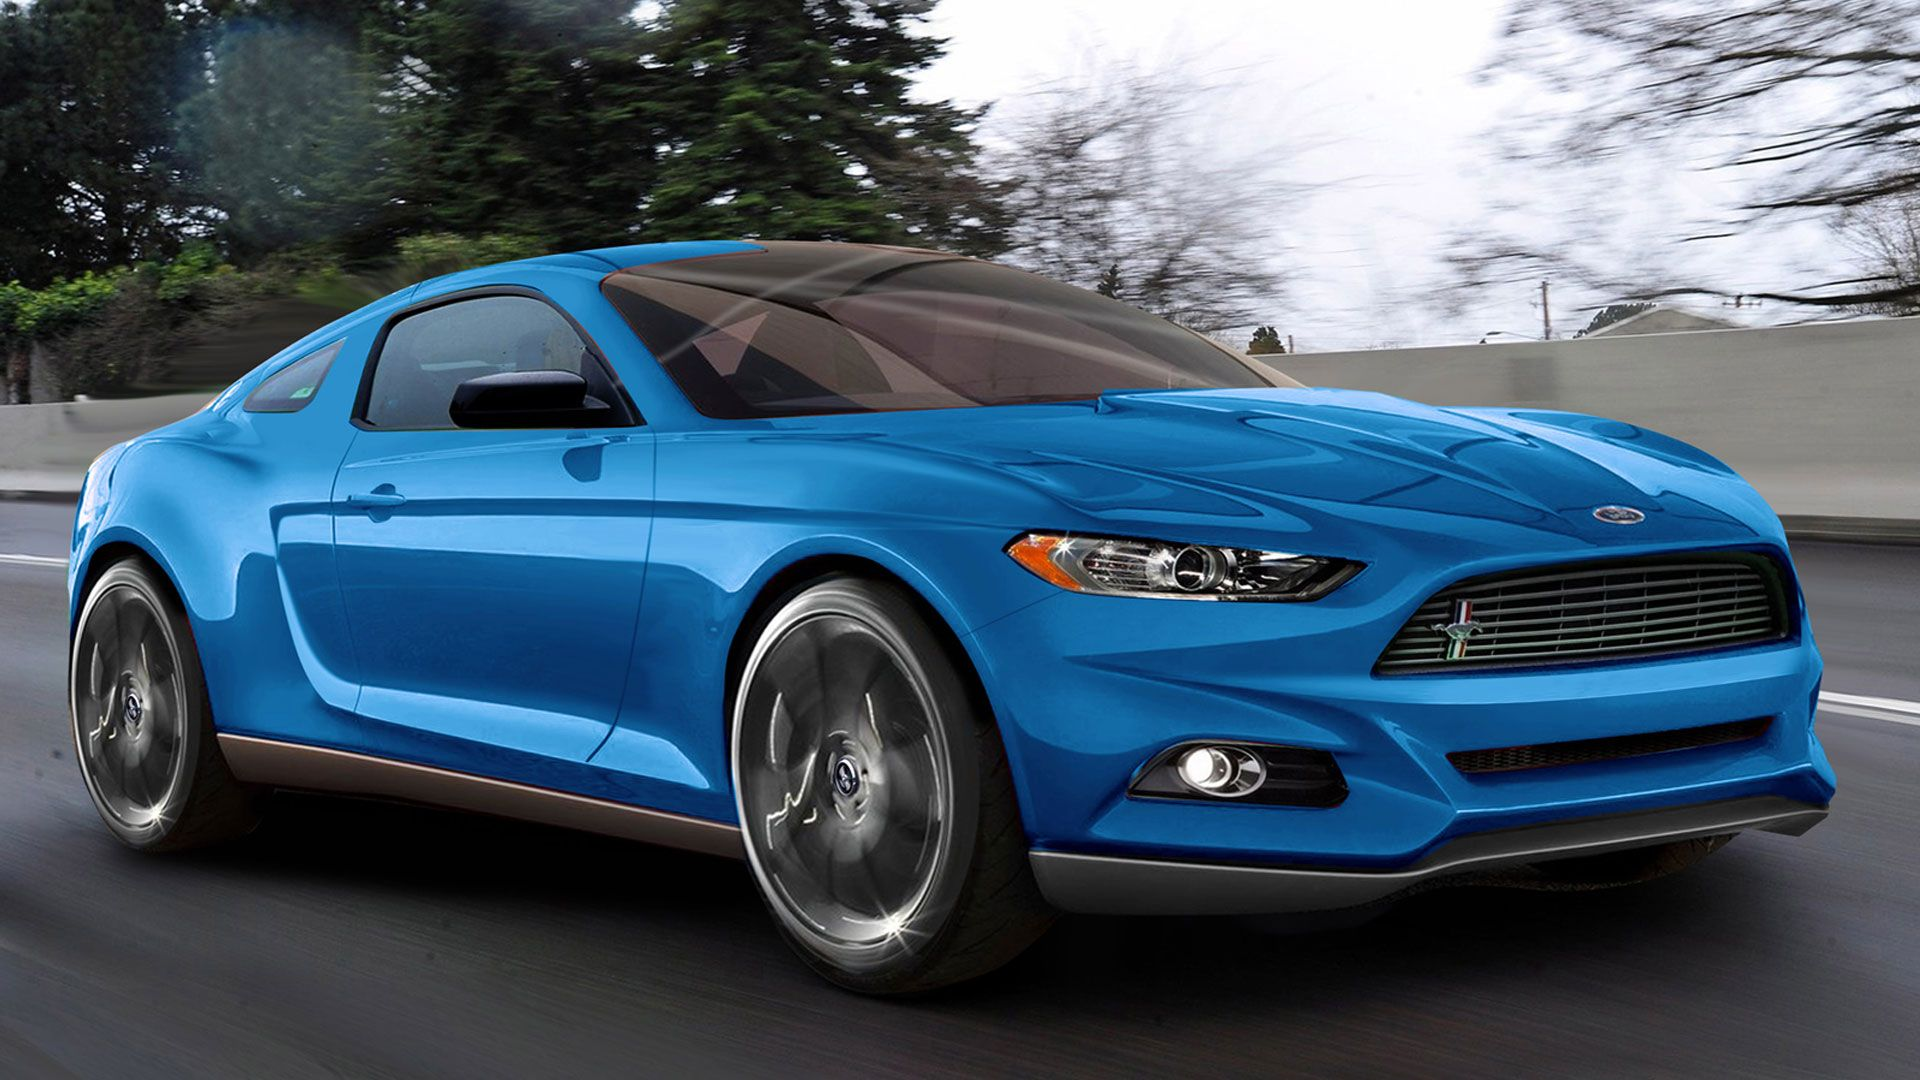 2015 ford mustang gt blueprints 2015 ford mustang gt must sell in mint condition - Ford Mustang 2015 Blue